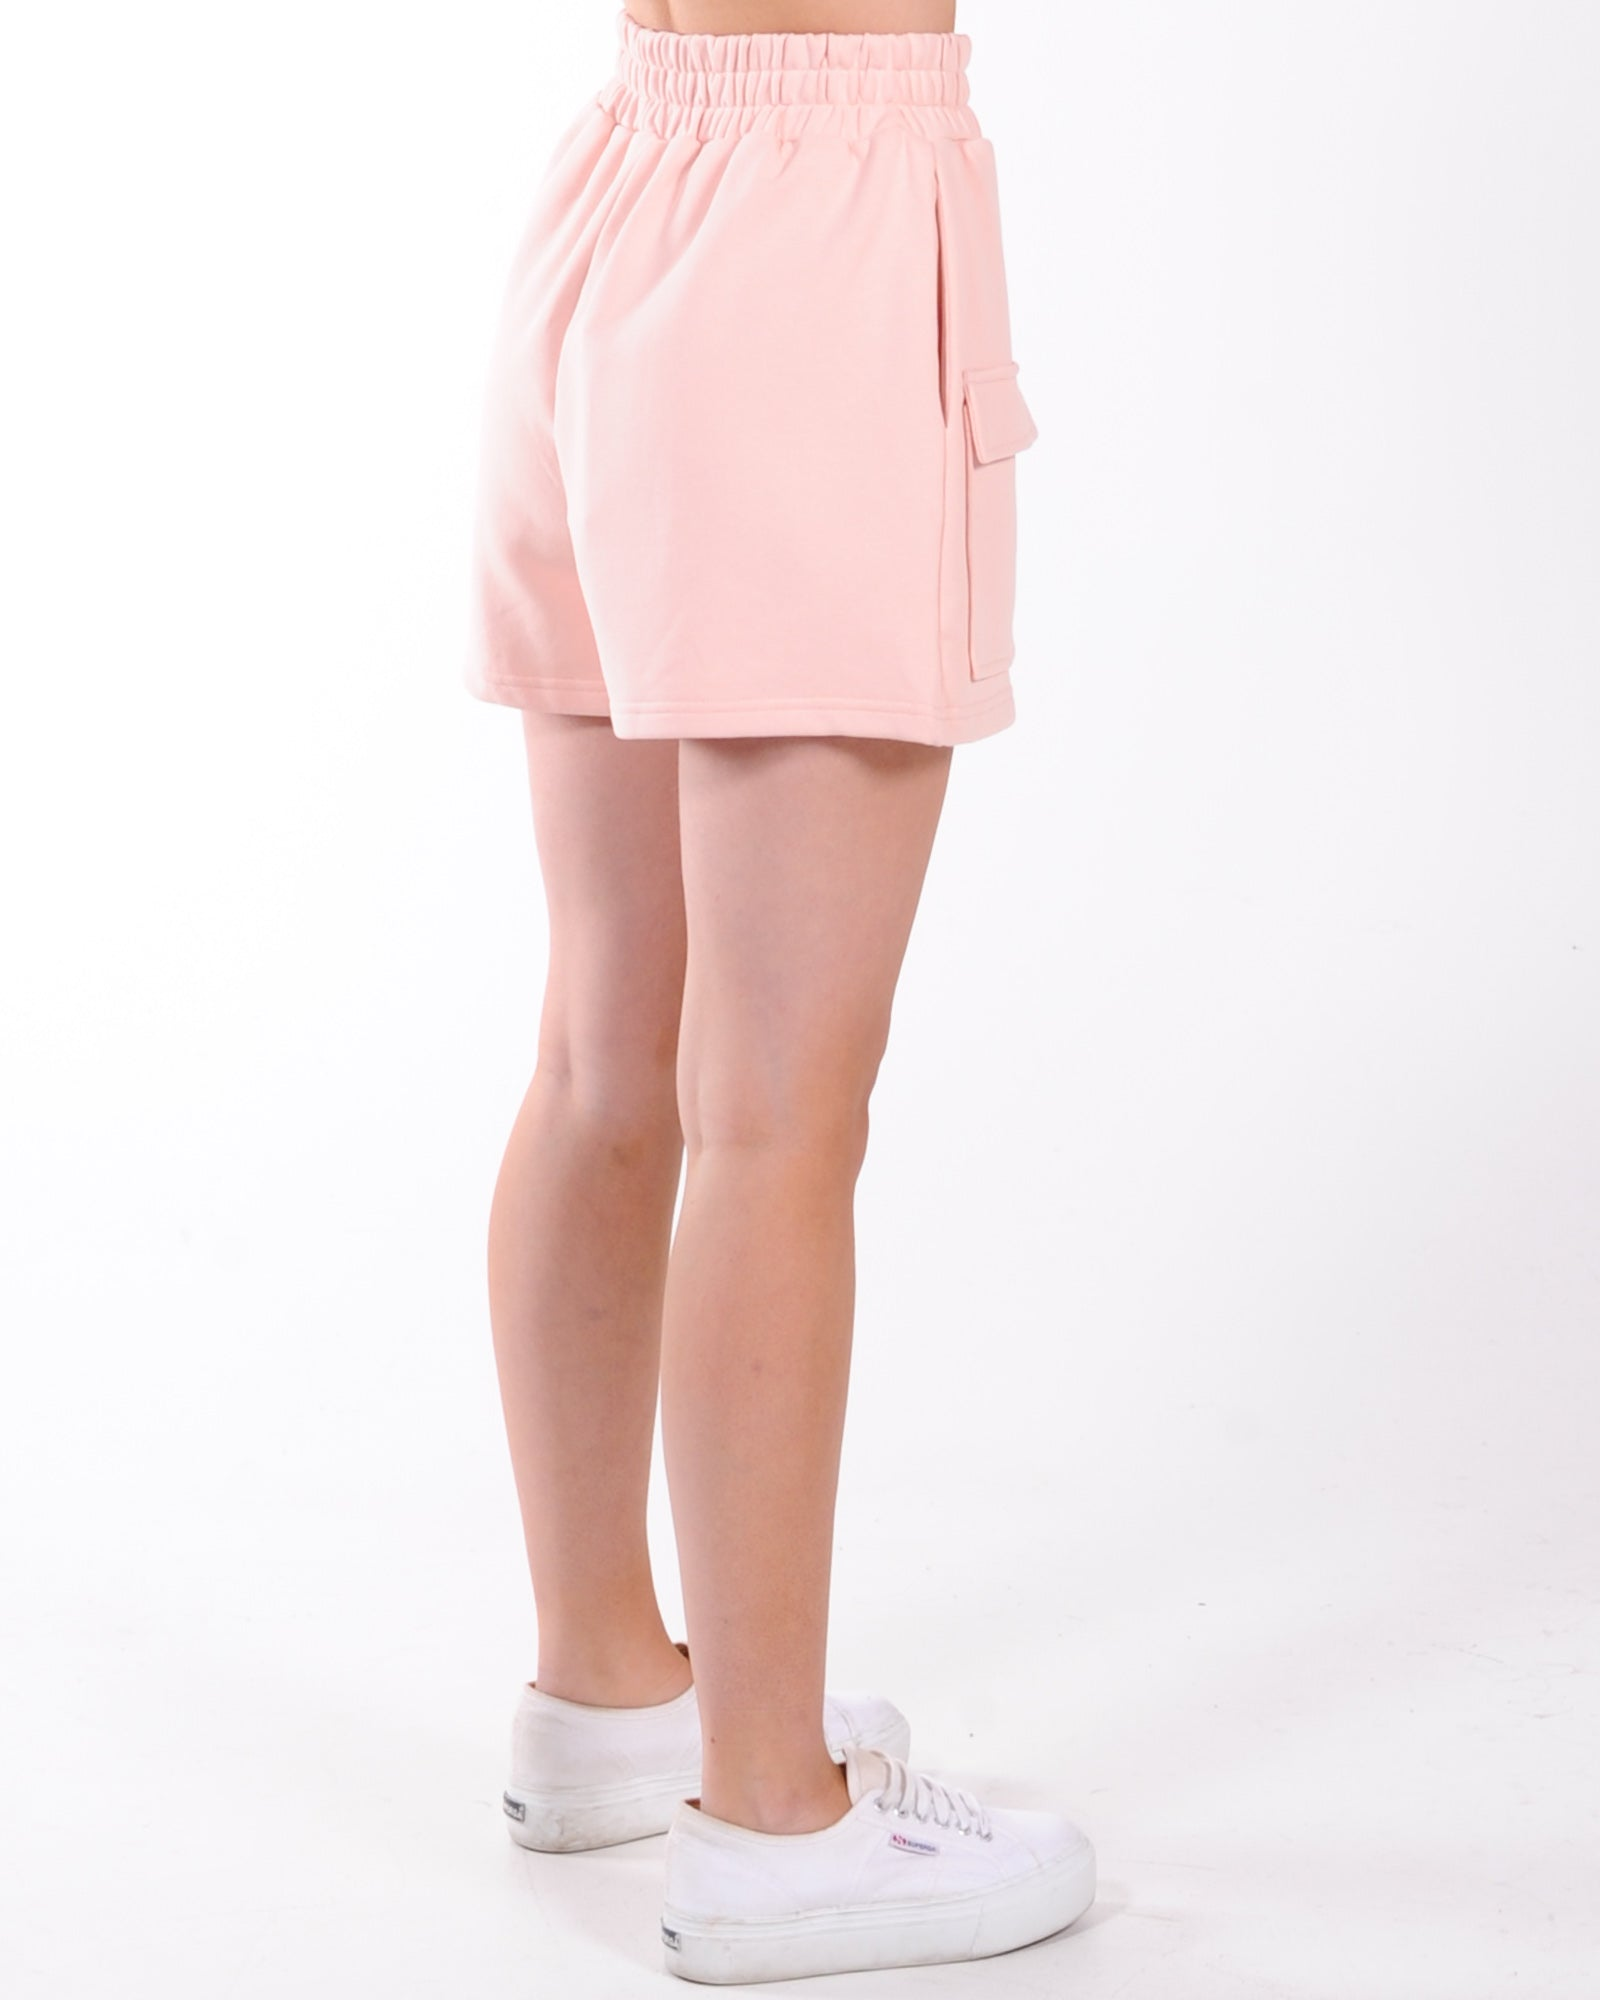 Madison The Label Maxwell Shorts - Blush